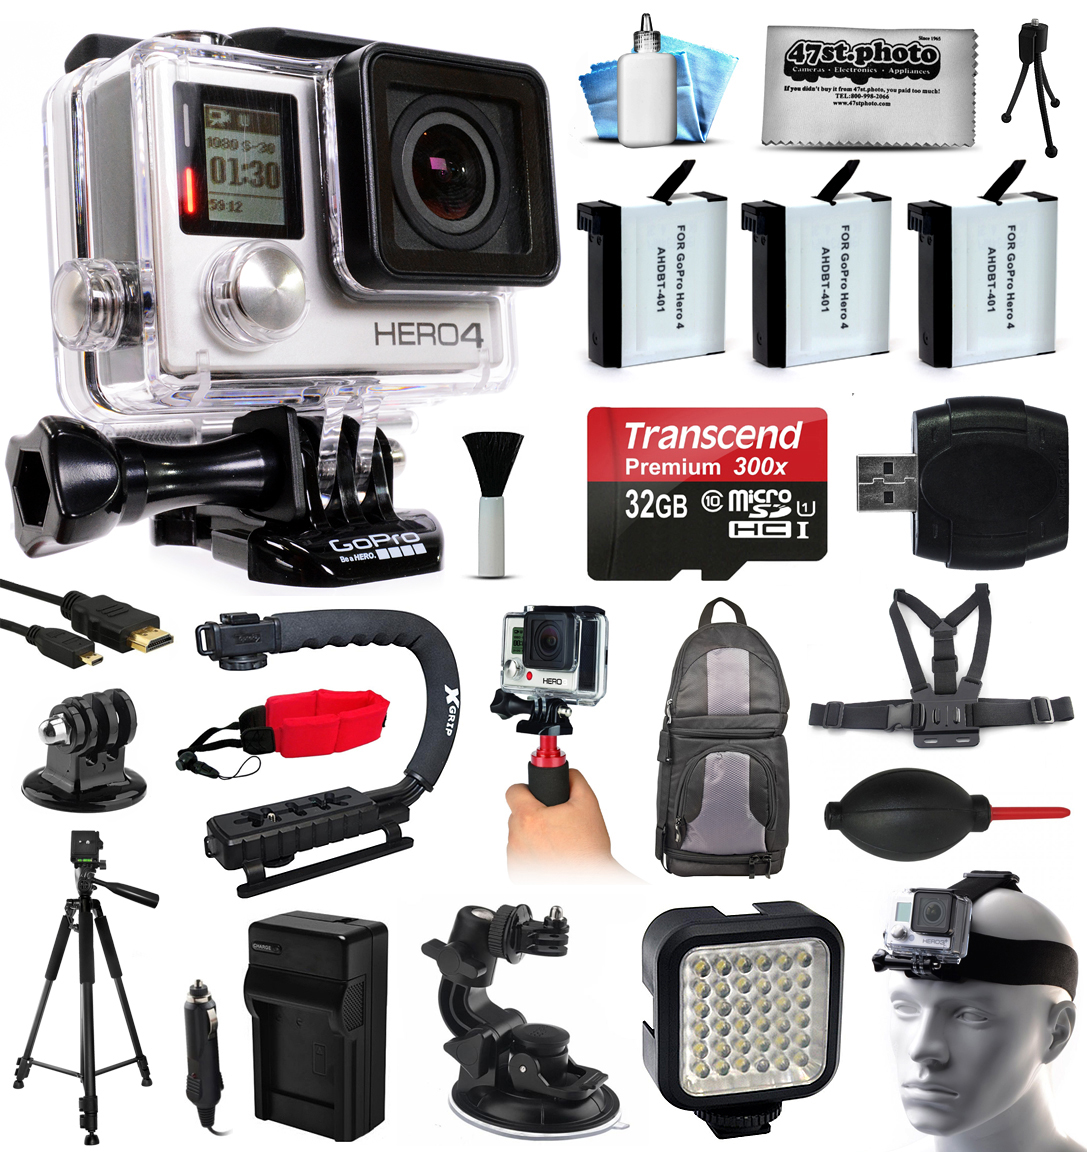 GoPro HERO4 Silver Edition 4K Action Camera with 32GB Mic...